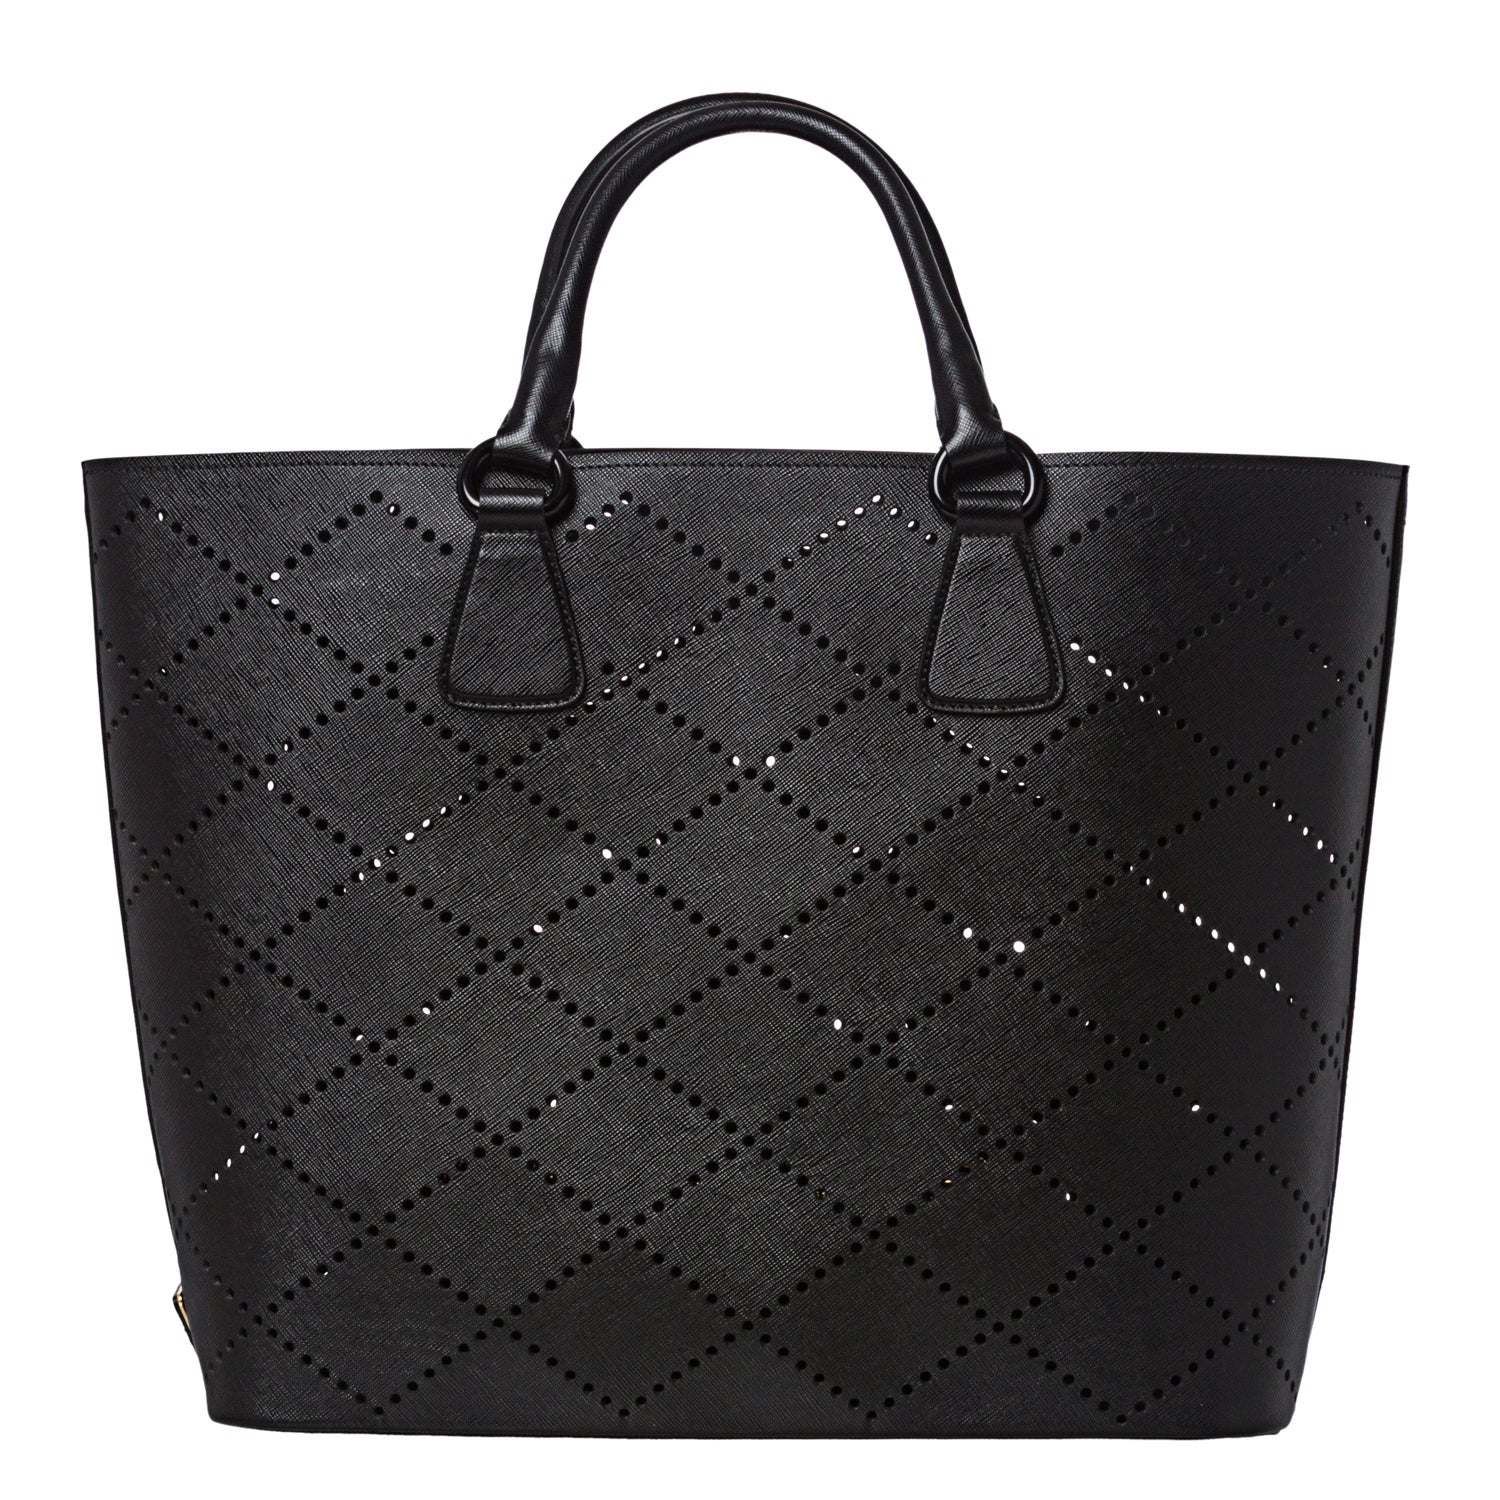 promo code for lyst prada gardeners small tote bag in orange b4687 dc618   ireland prada large black perforated saffiano leather tote bag 7138f 2ef4c d897f9790e7df